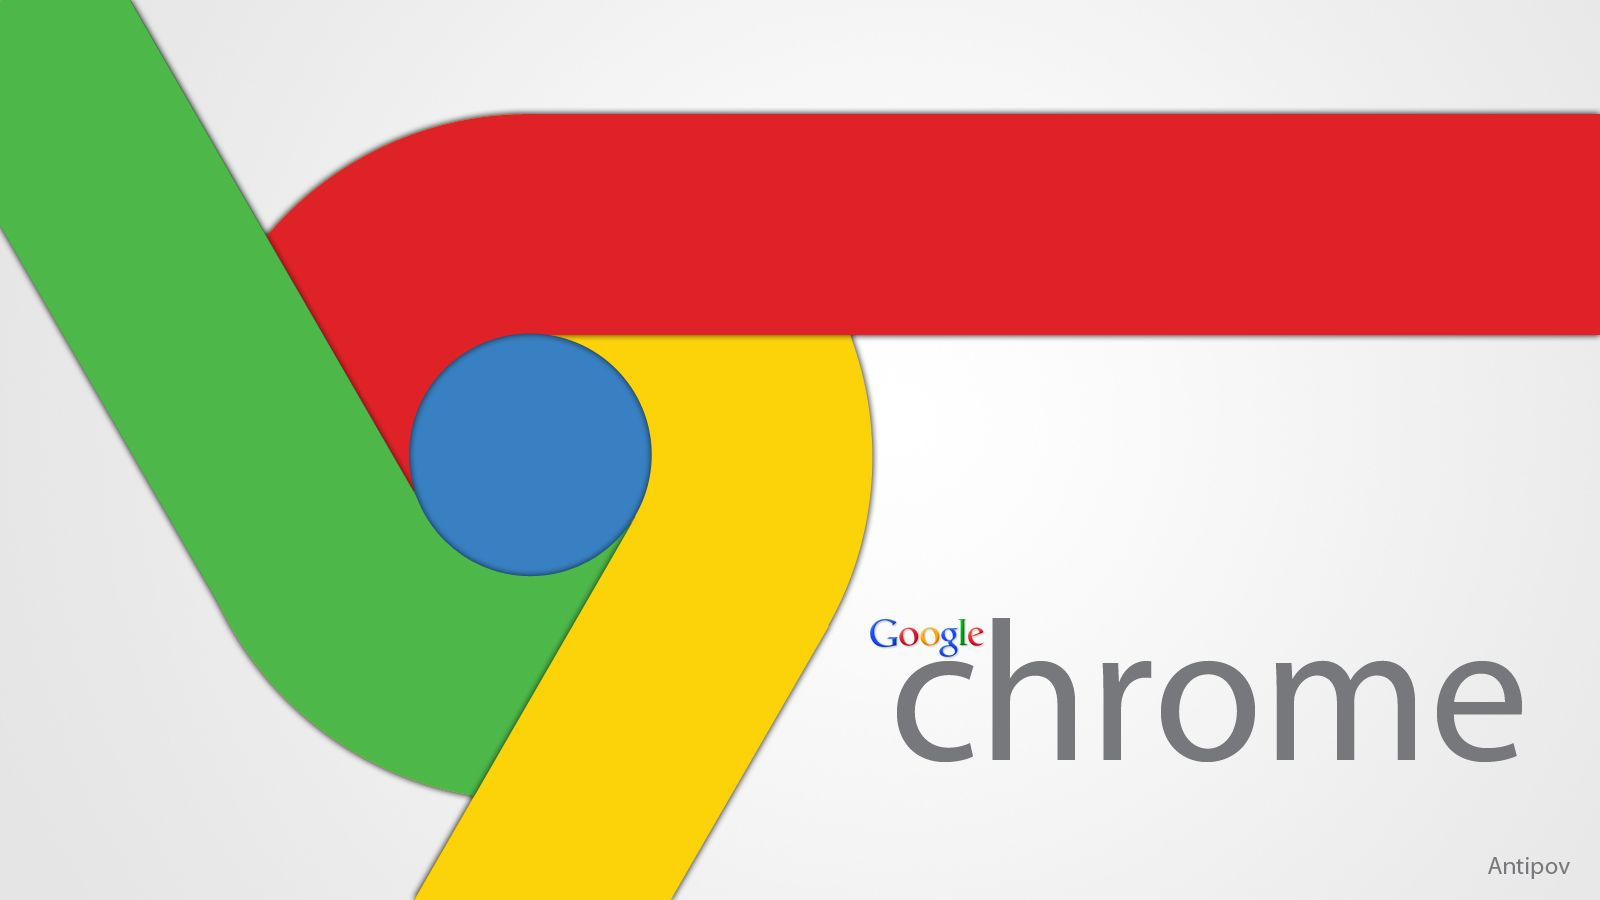 Hd google chrome wallpapers hd wallpapers pinterest google hd google chrome wallpapers voltagebd Images